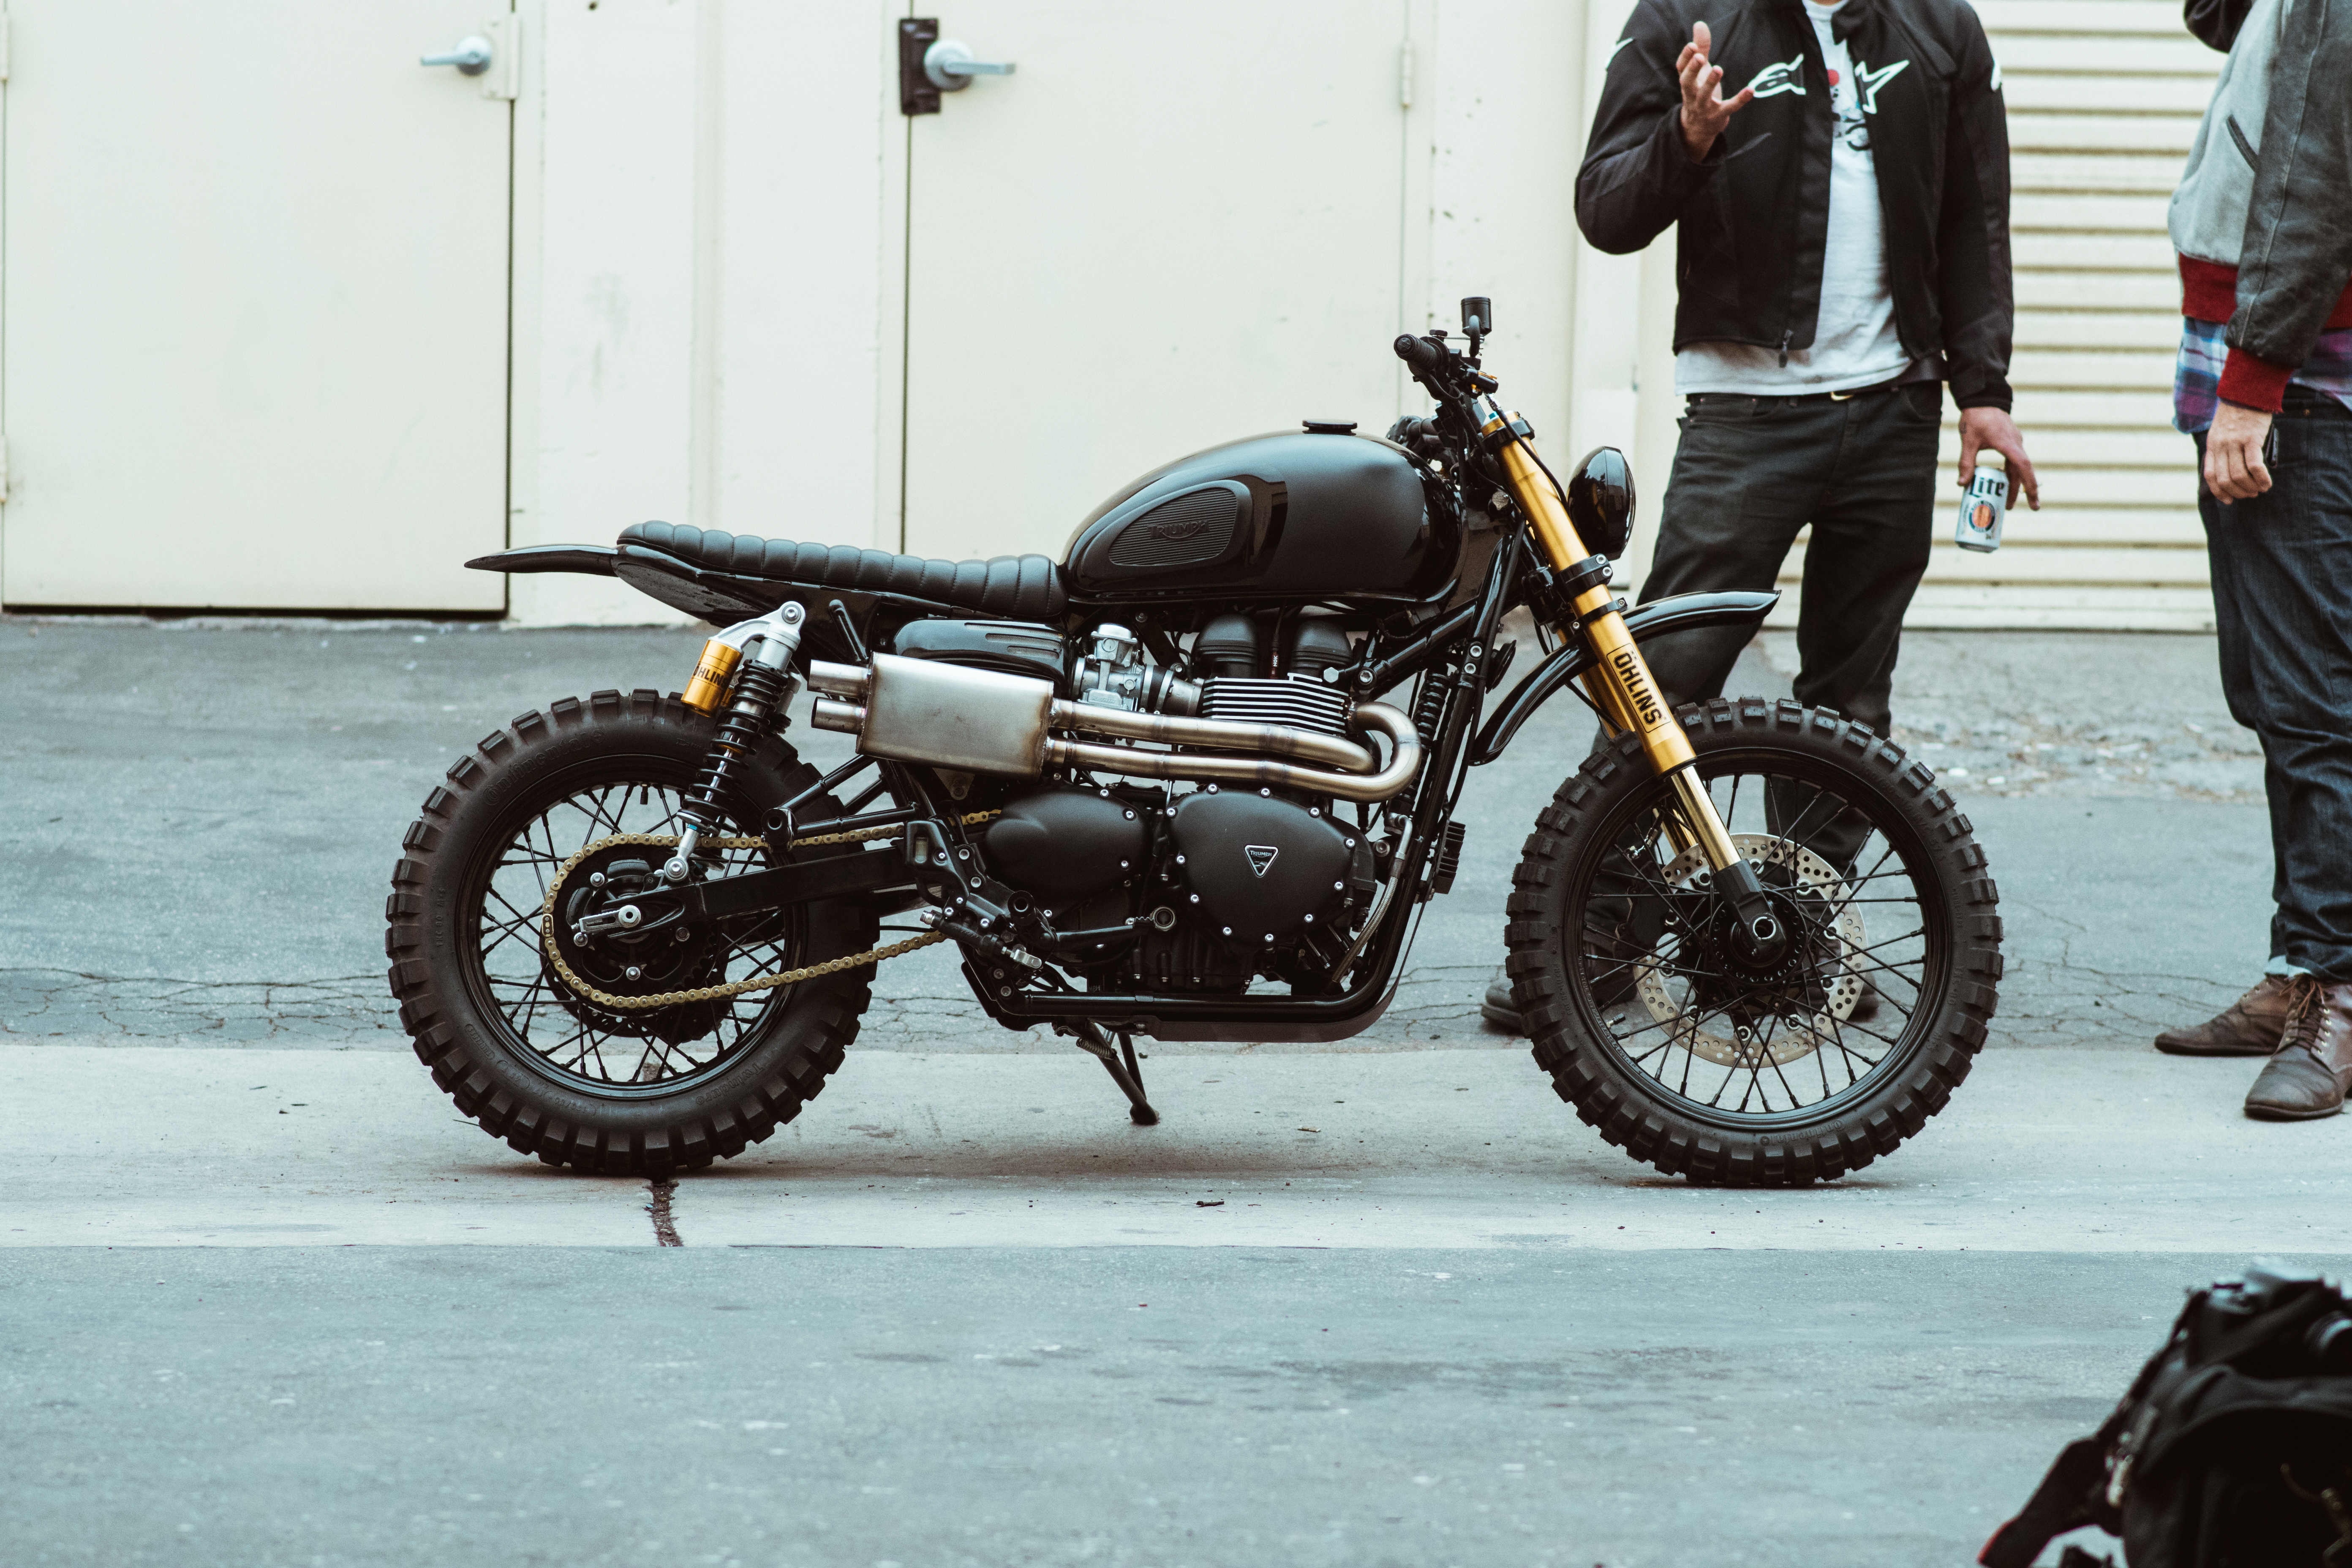 Rugged And Raw A Triumph Scrambler By Seaweed And Gravel The Bullitt